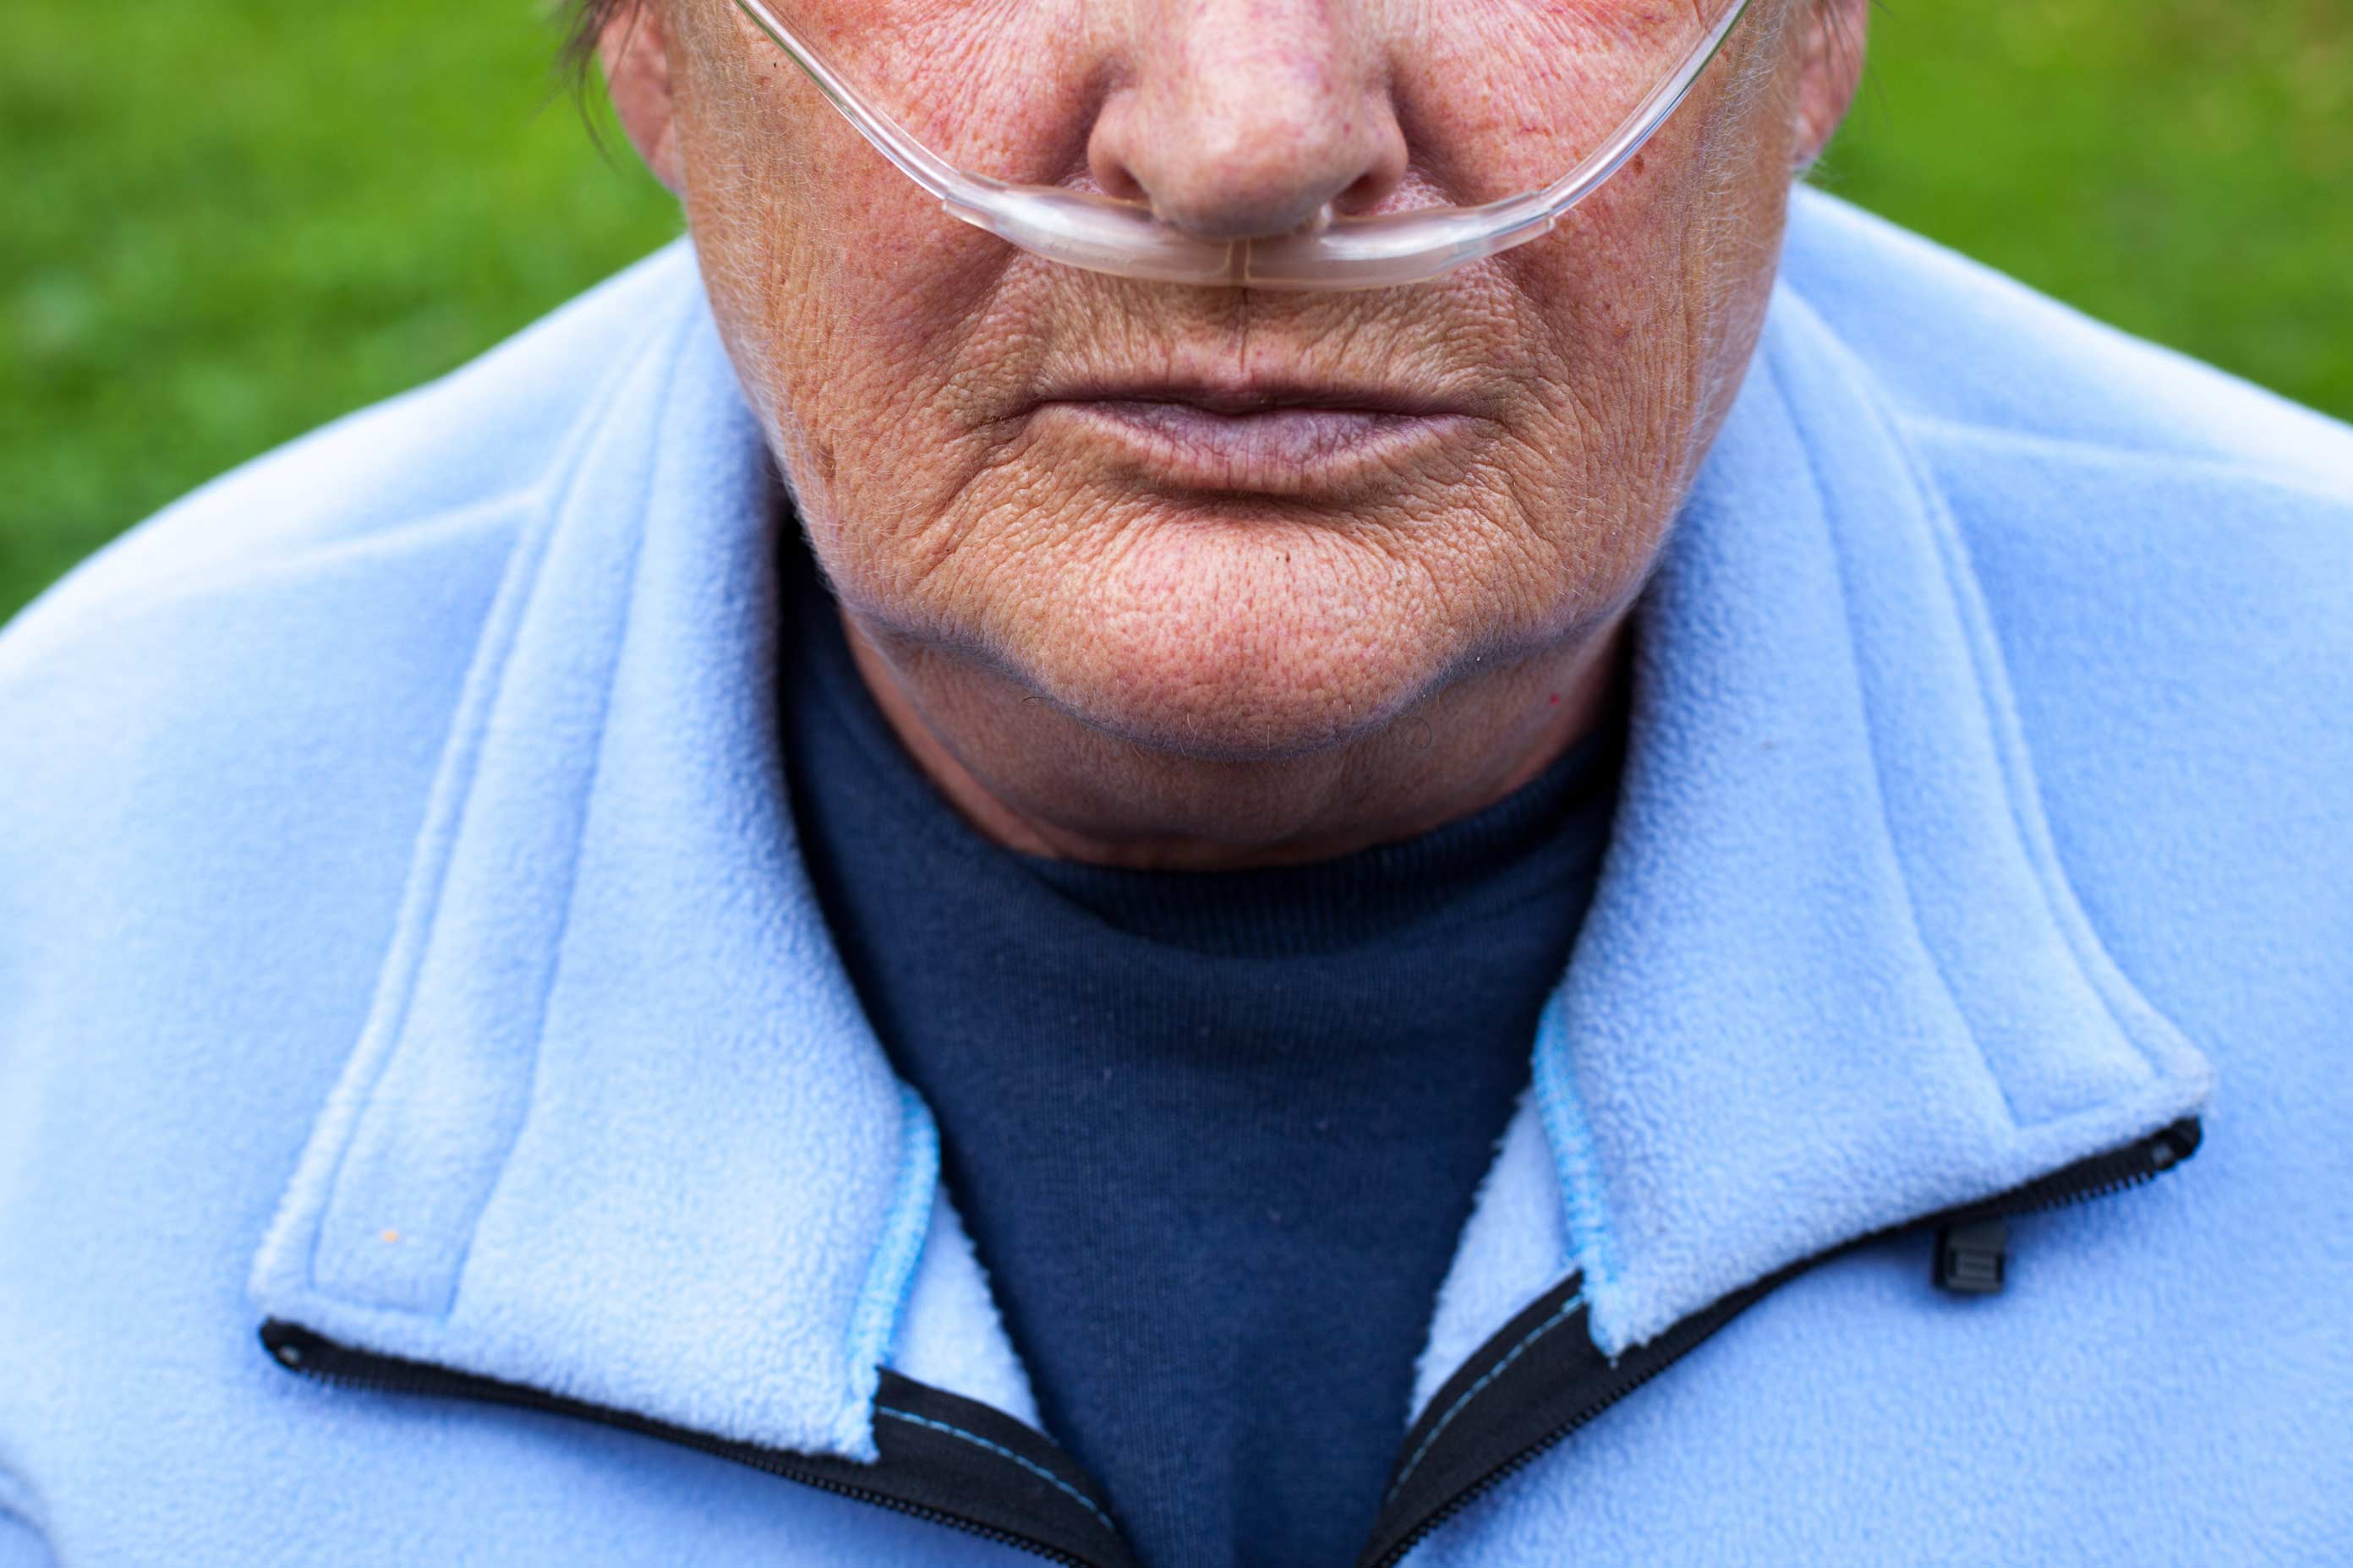 Living with Pulmonary Fibrosis